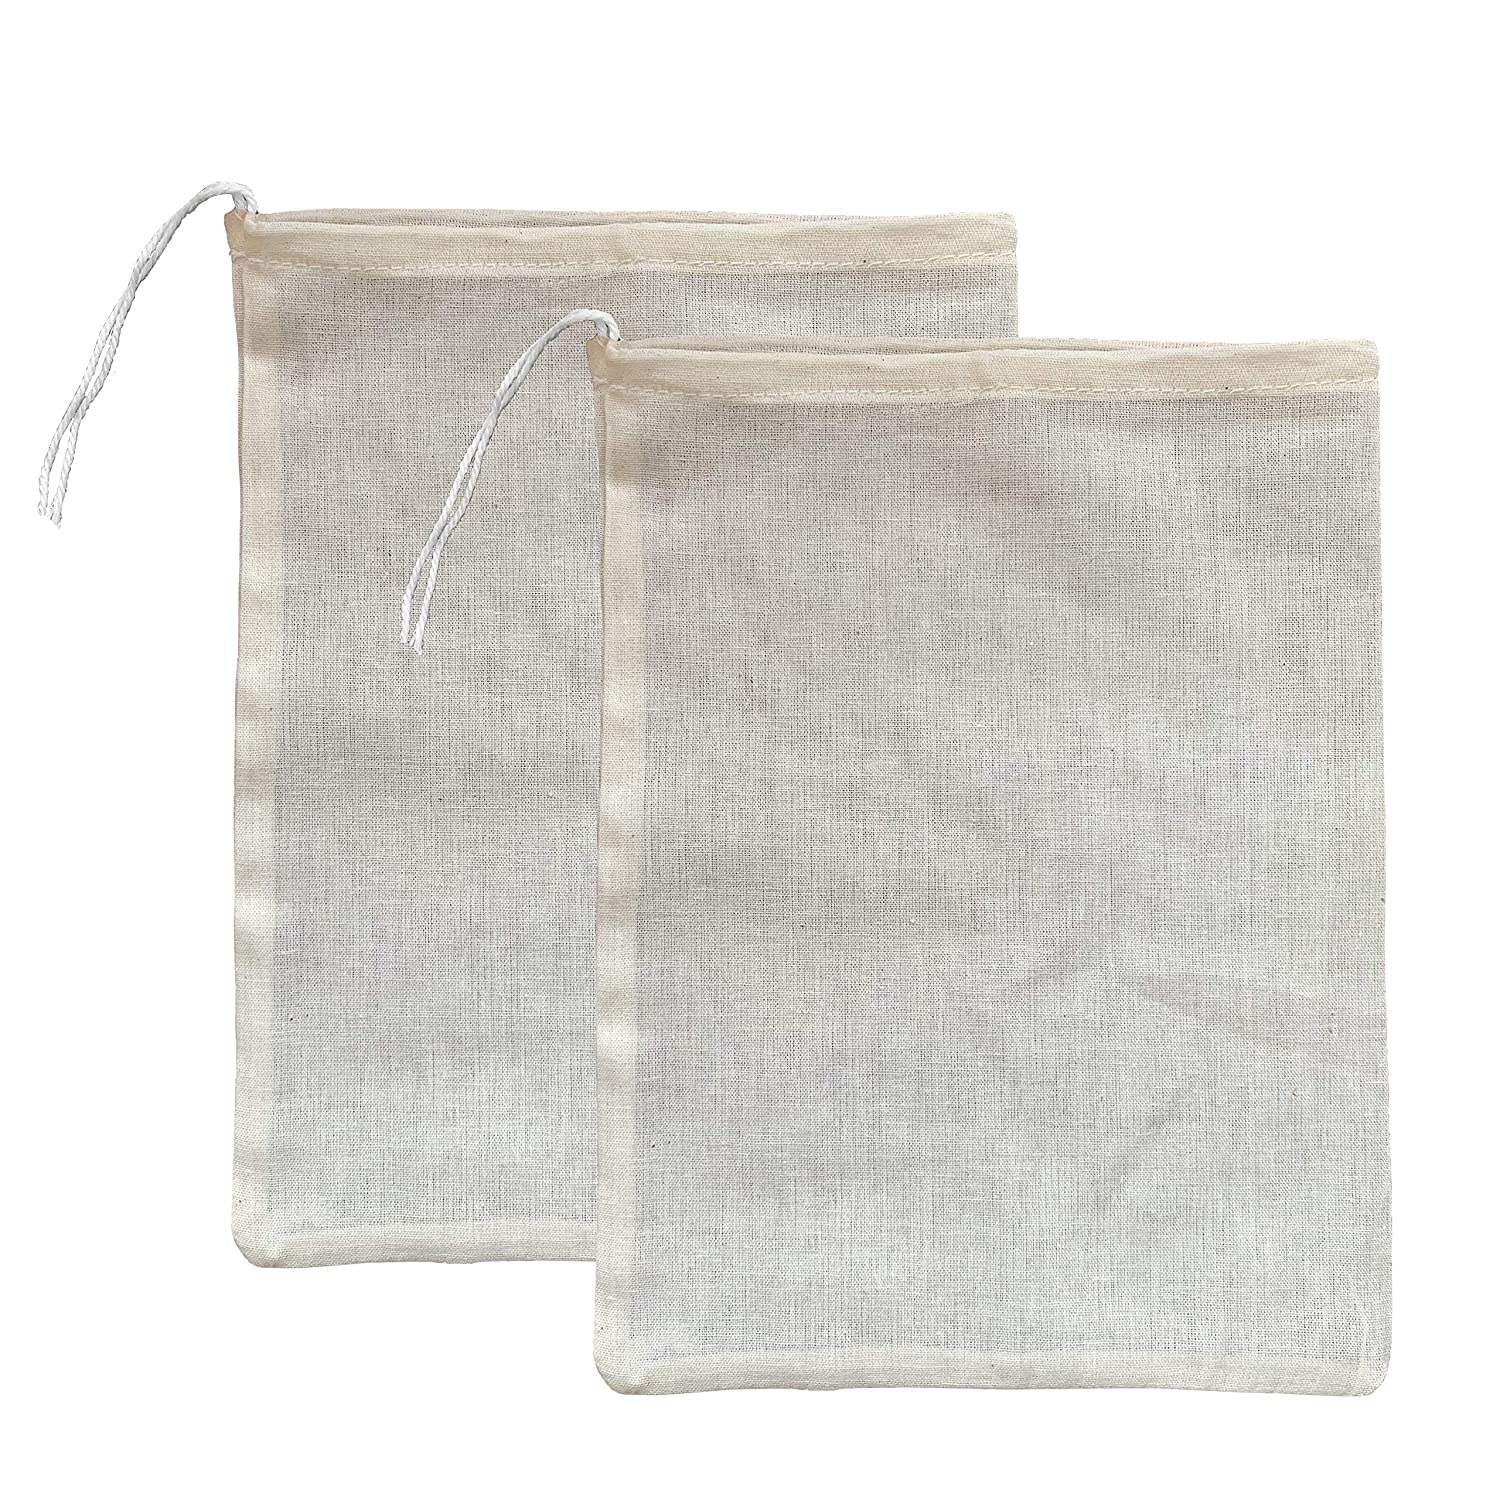 "(2 Pack) Premium Natural Cotton Cheesecloth Bags for Straining Almond Milk, Yogurt, Juice - Small 10""x 8"" Suorou Nut Milk Bag - Reusable Fine Mesh Cheese Cloth Strainer with Easy open Drawstring A1T-pYgtmZL"